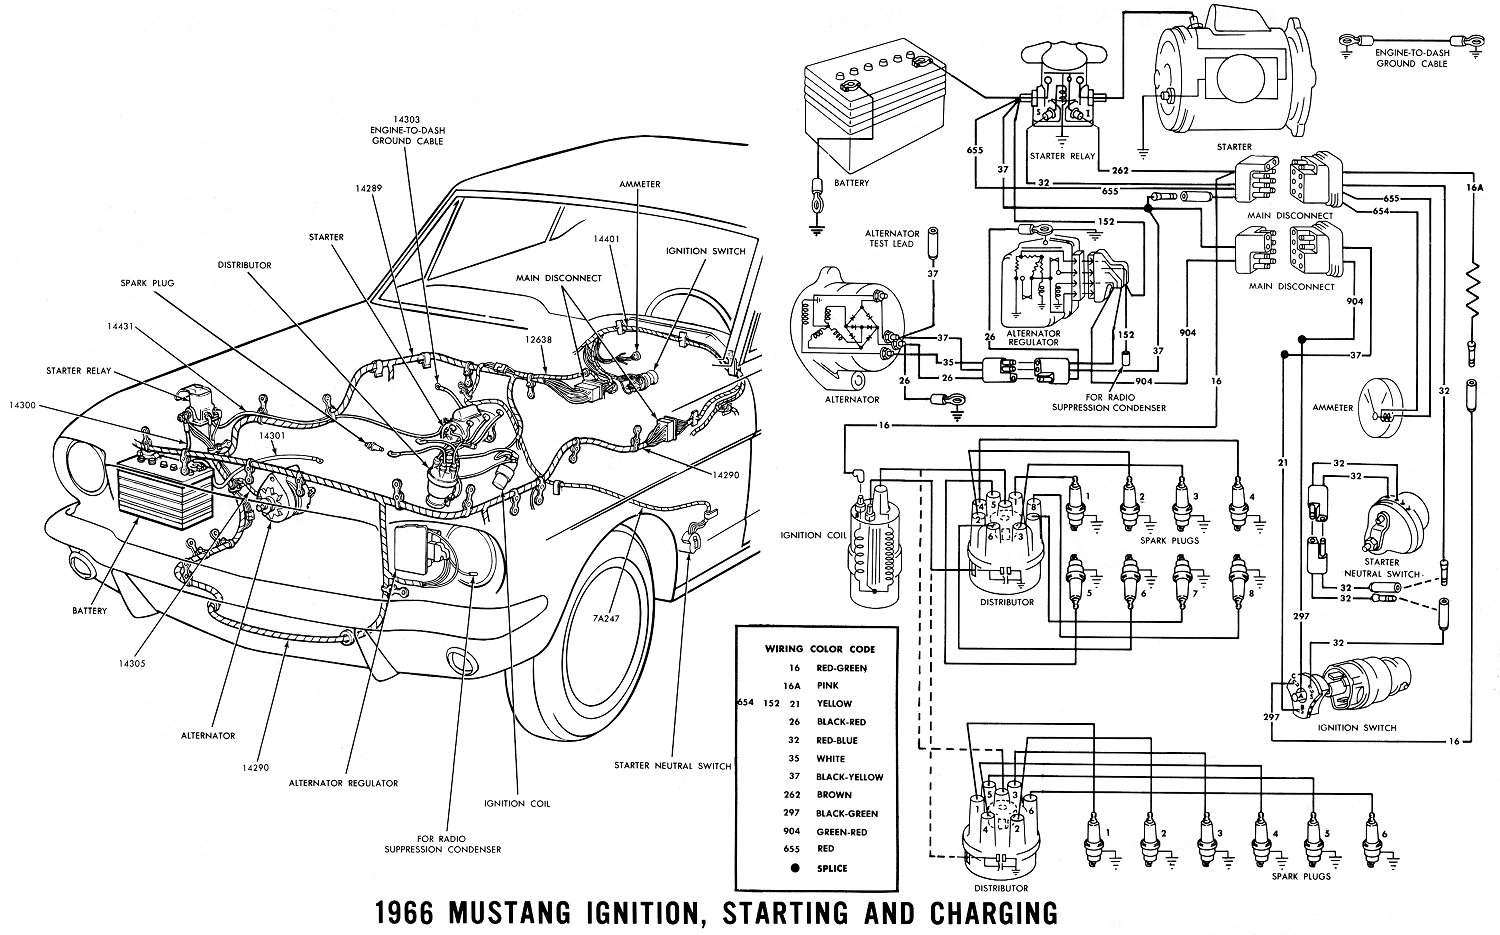 66ignit 1966 mustang wiring diagrams average joe restoration 1966 mustang ignition switch wiring diagram at n-0.co